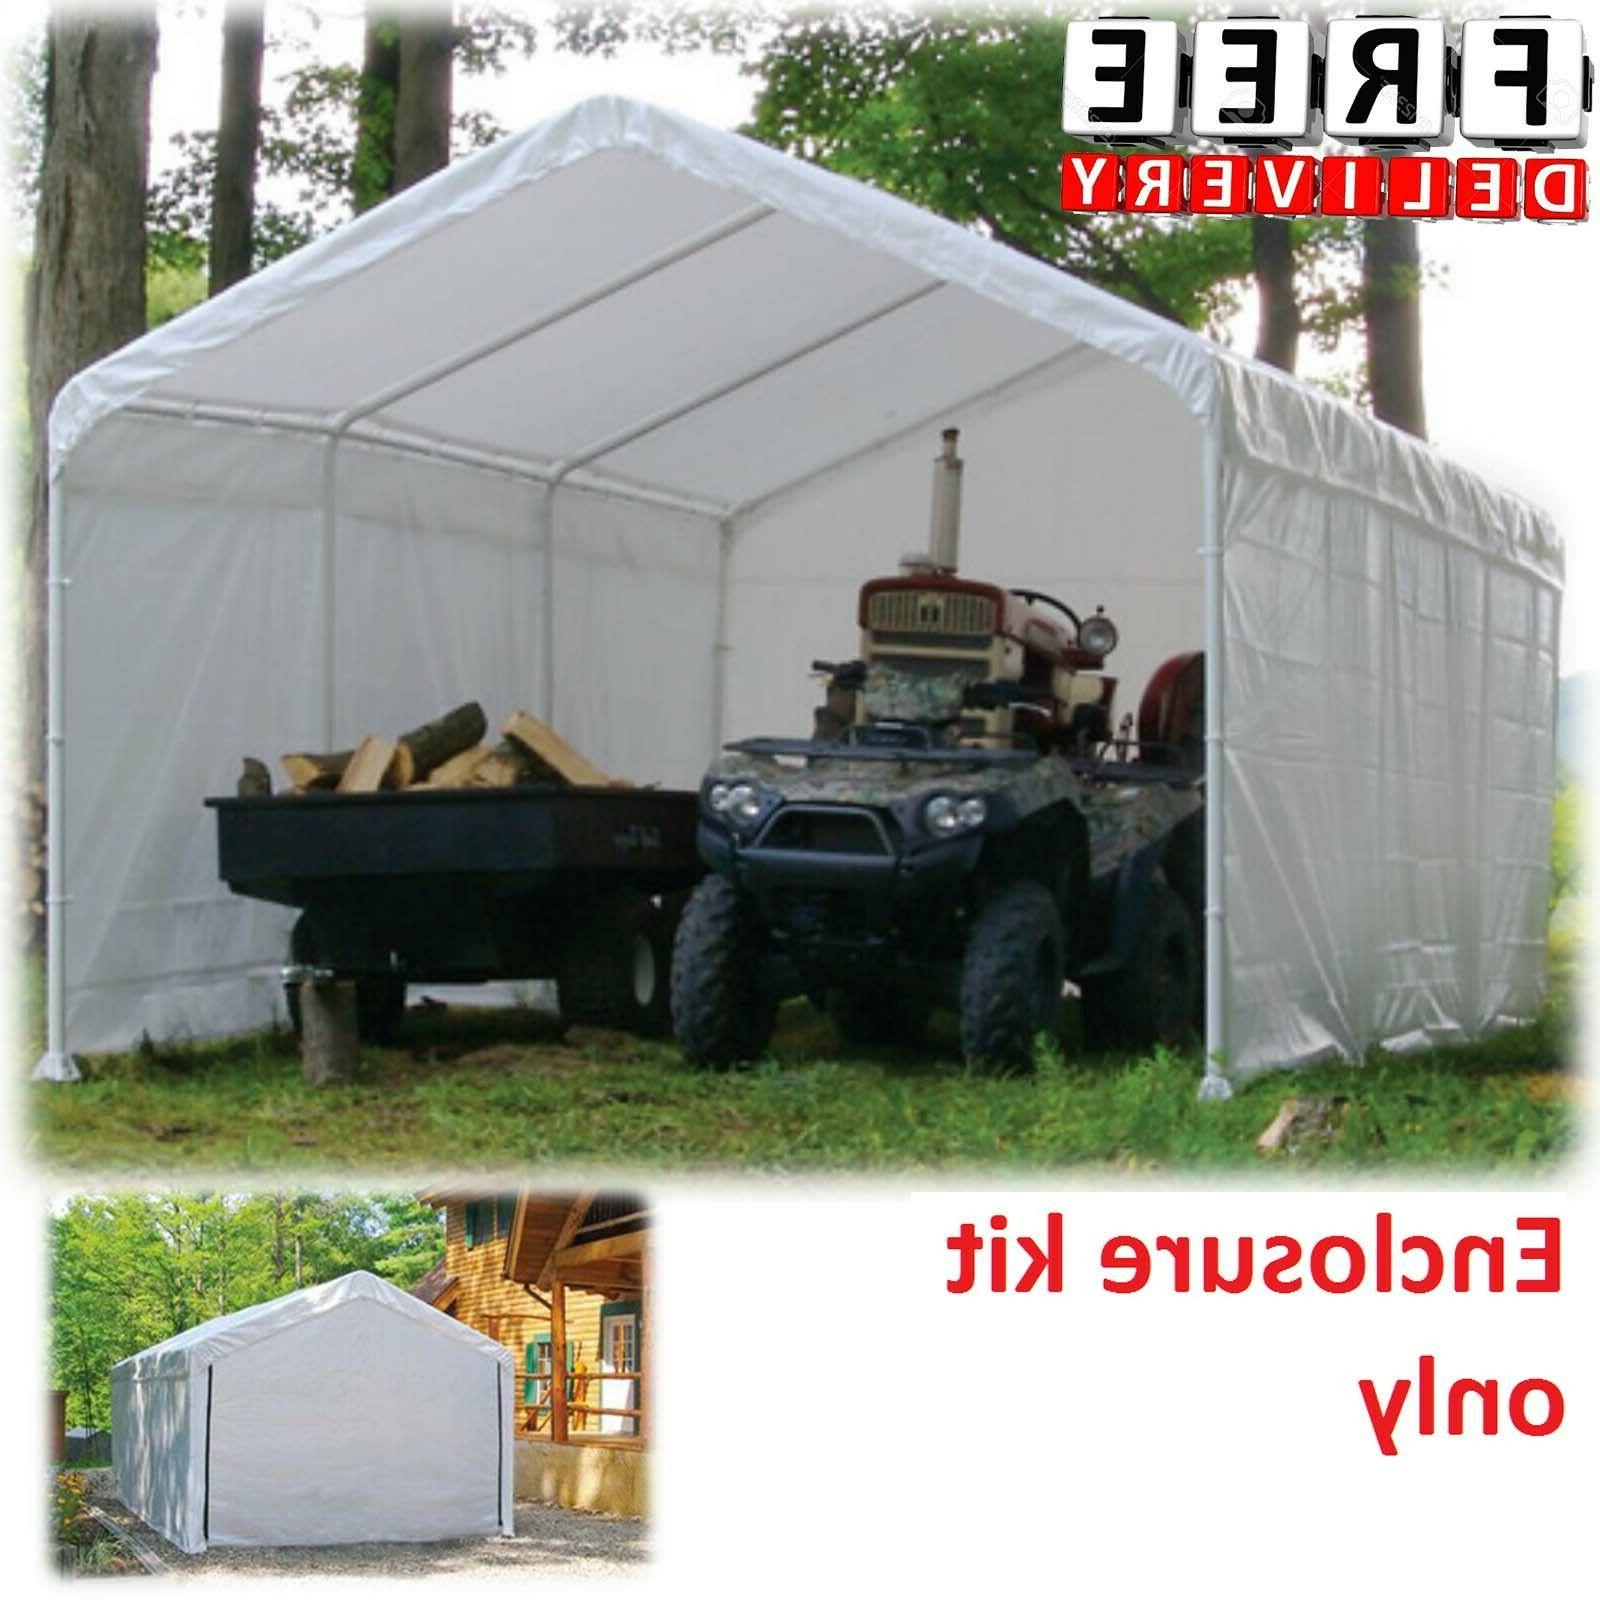 Canopy Enclosure Kit 12x30' Shelter Portable UV Protection G